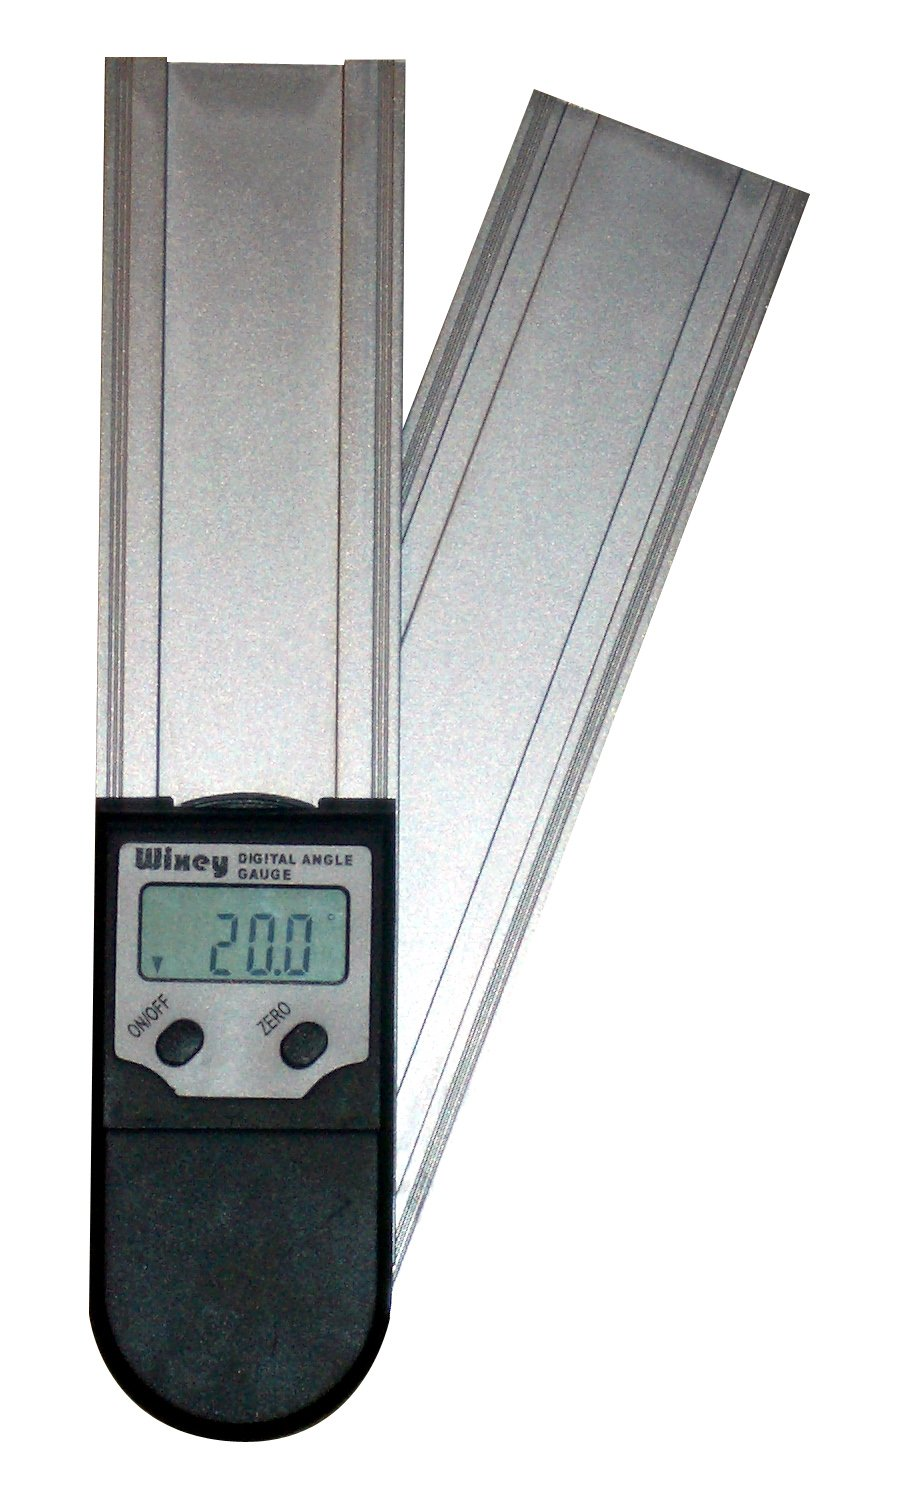 Wixey WR410 8-Inch Digital Protractor product image